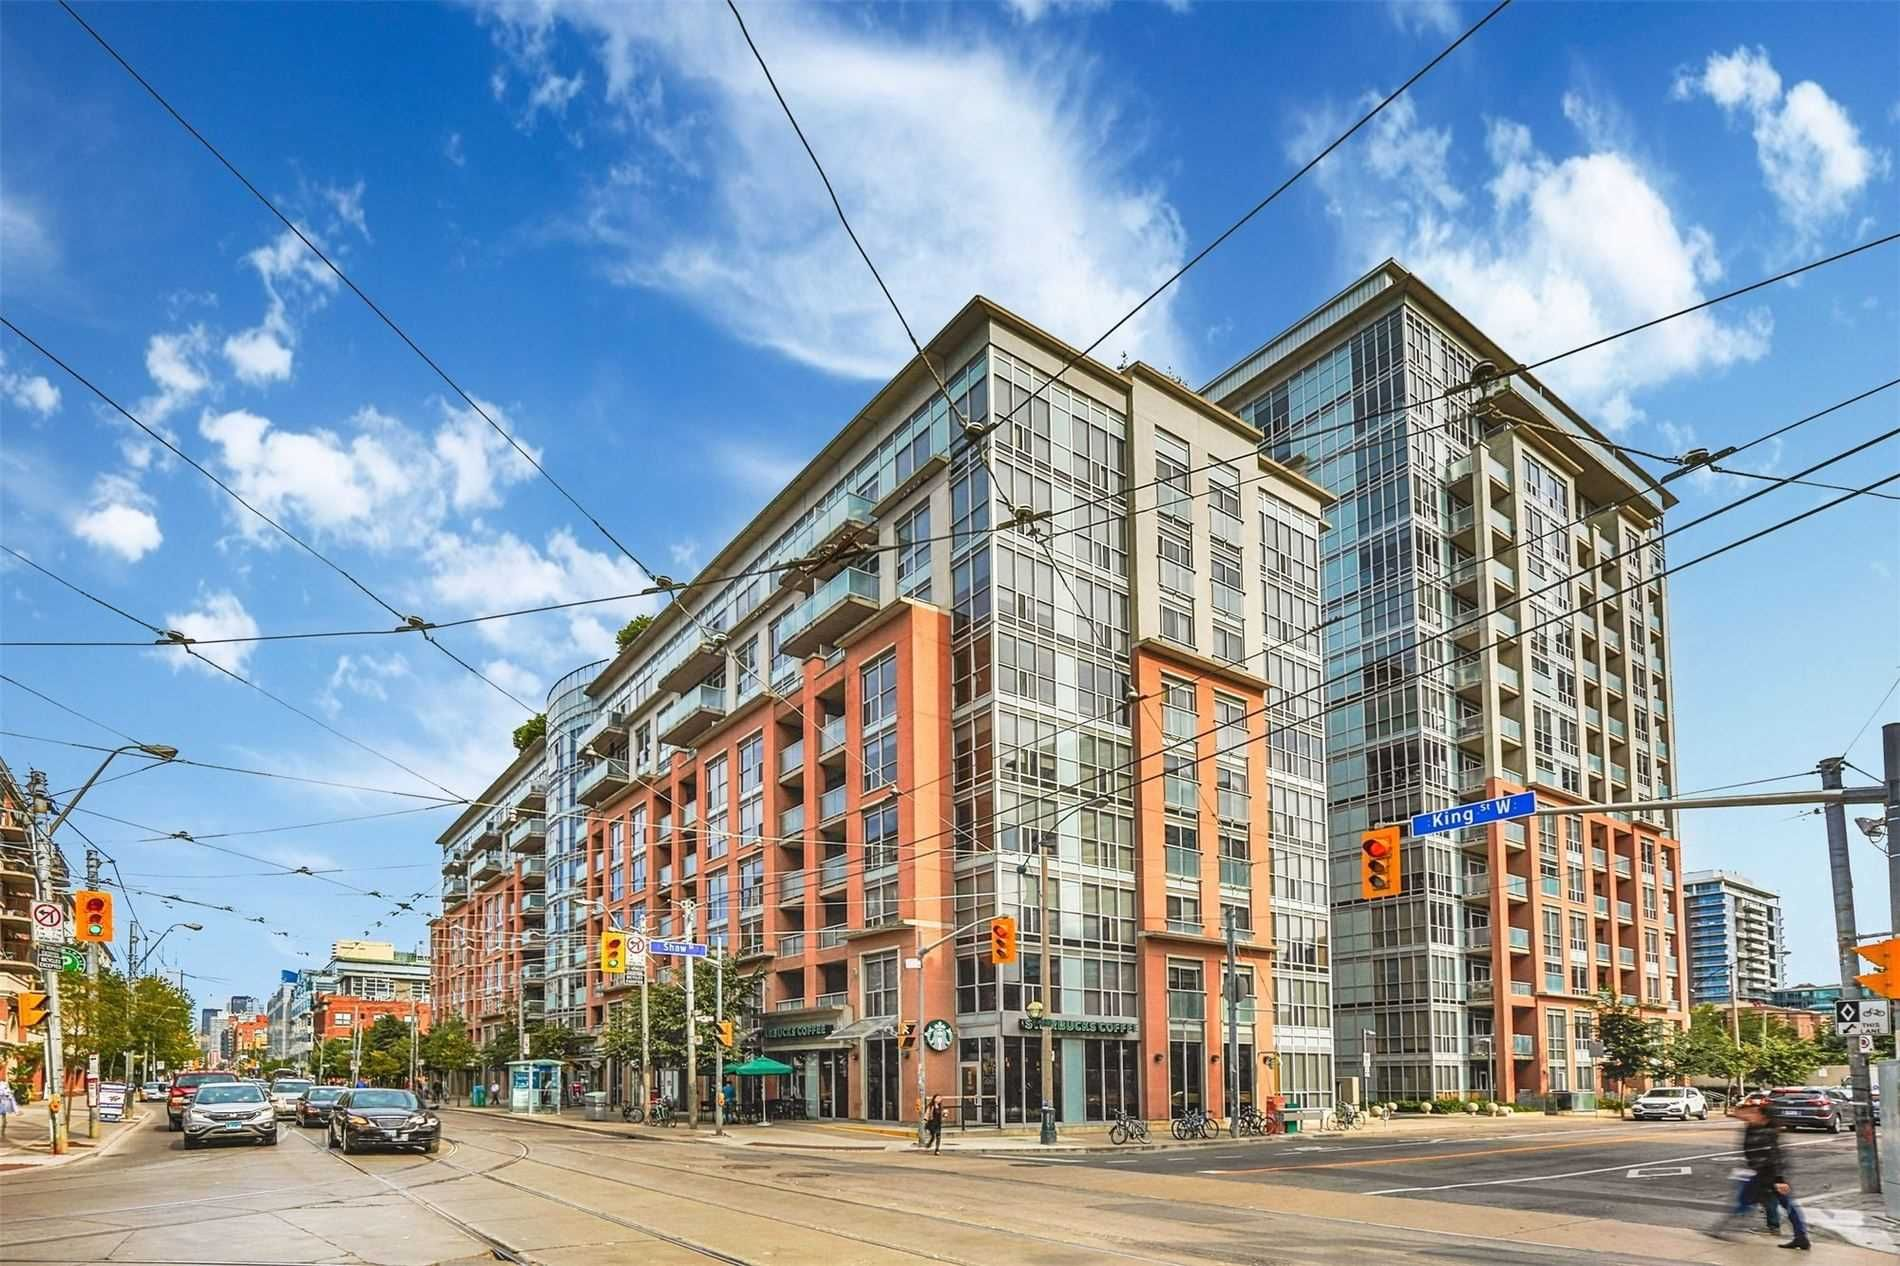 1005 King St W, unit 106 for sale in Toronto - image #1